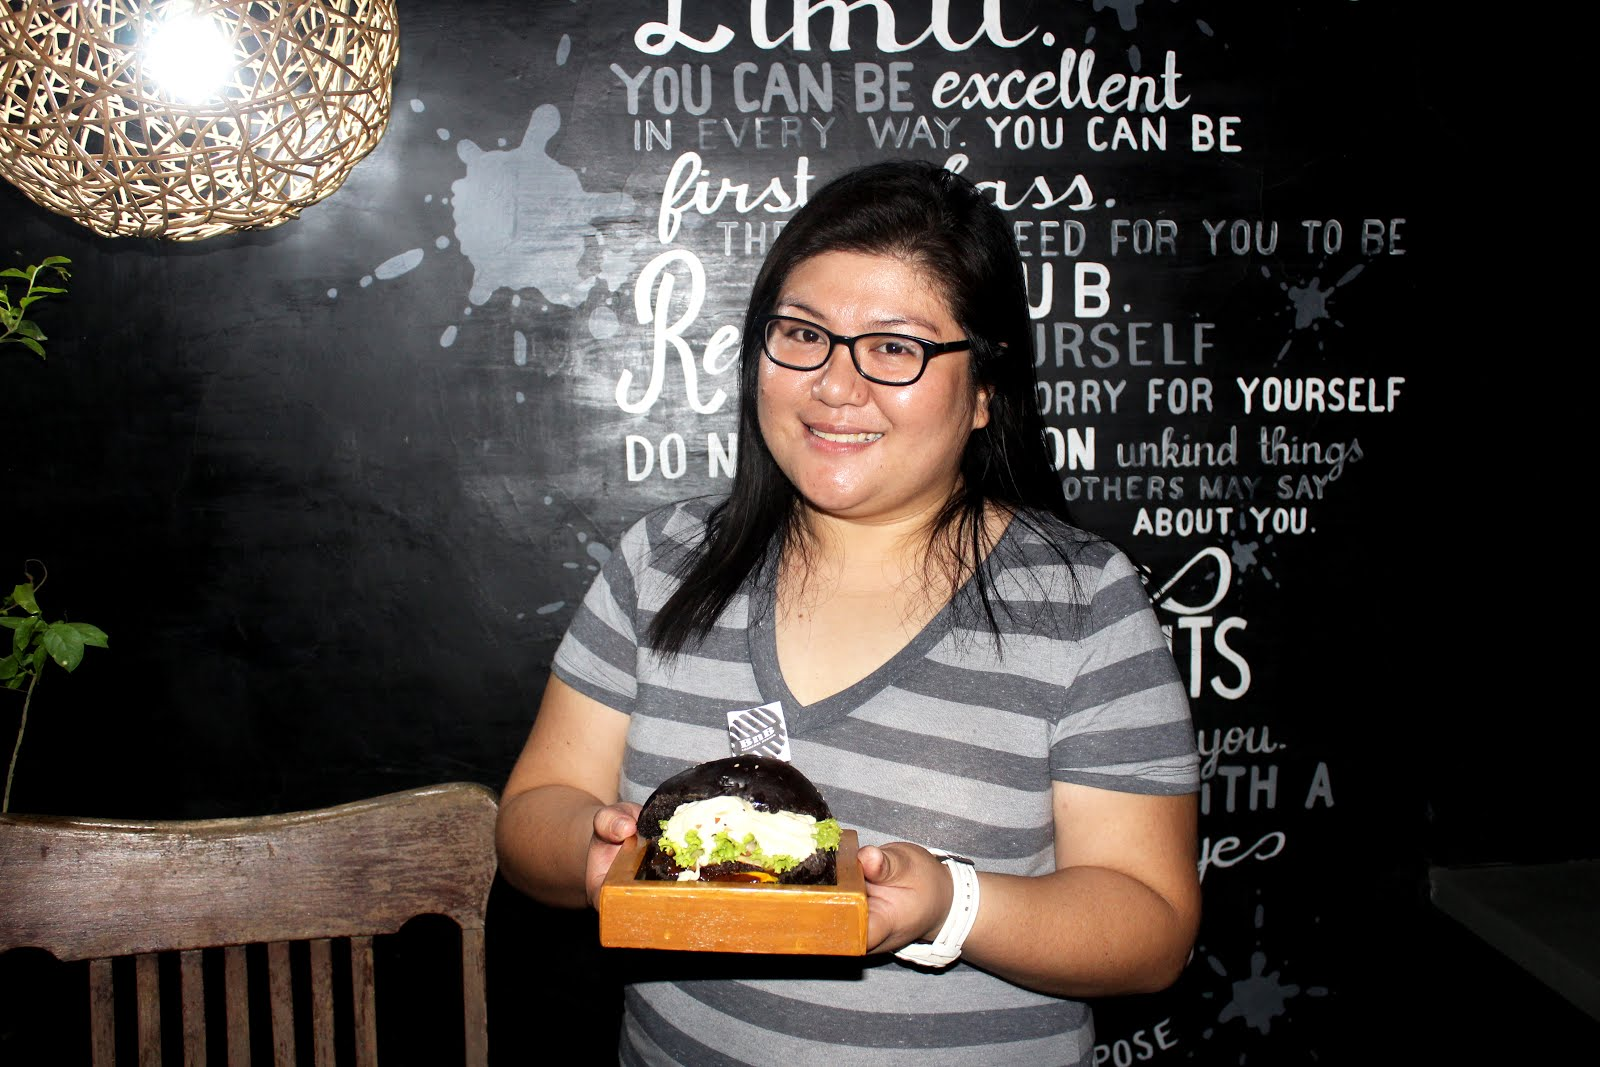 BnB's tireless owner shares her recipe for success Food, Burger, Jamie Divinigracia, BnB Burger, Charcoal Burger, Social Media, Iloilo, #MillennialMaverhick, Brand, Creative, Creativity, Dining, Tourism